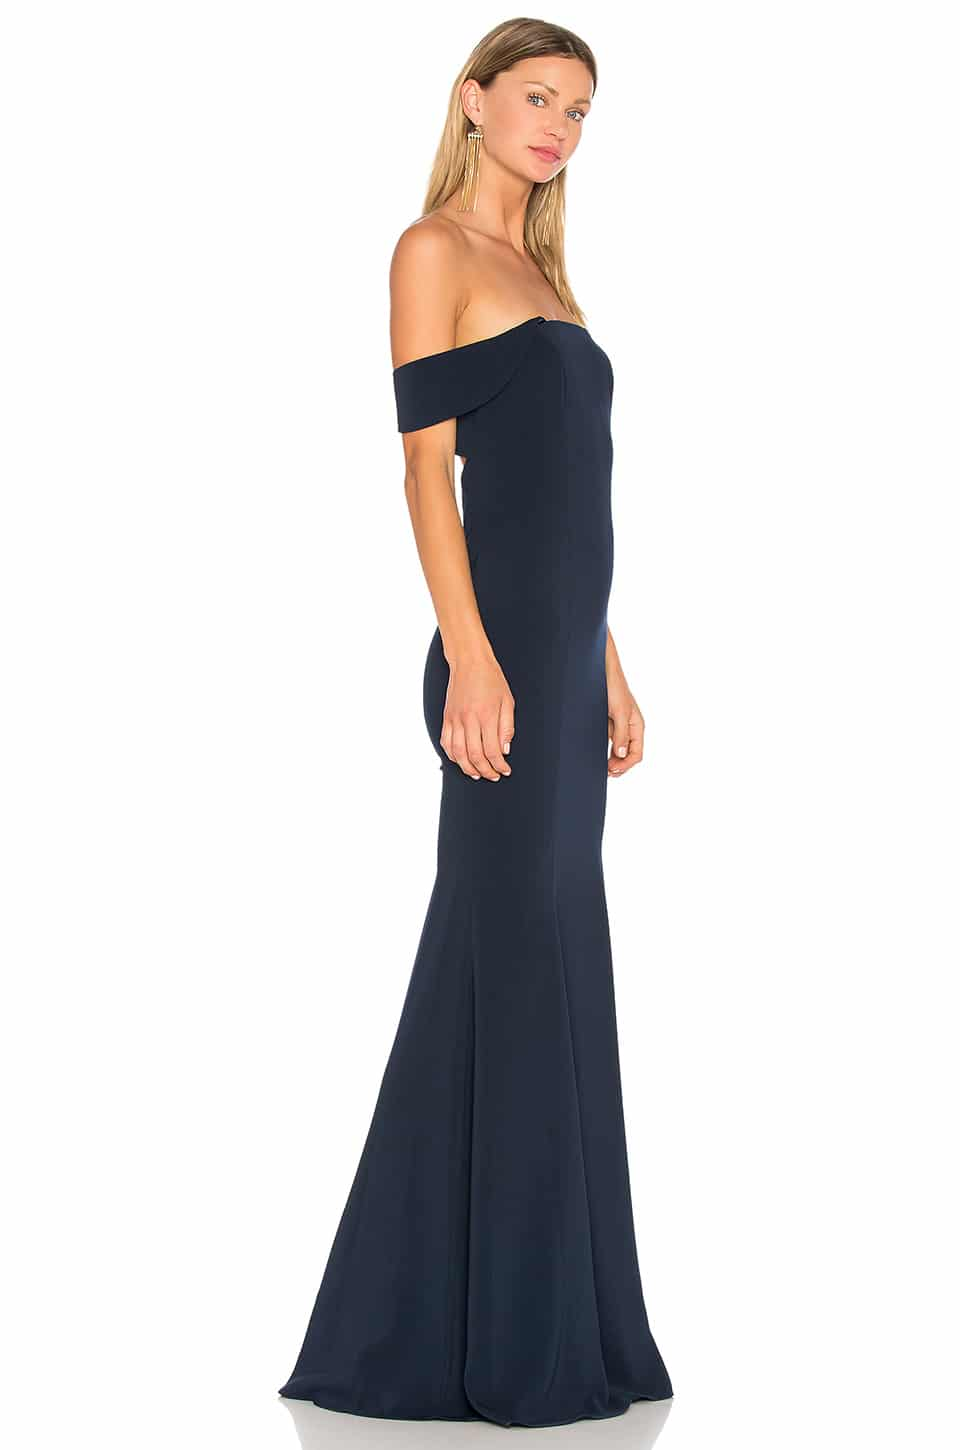 JAY GODFREY Biles Navy Gown - We Select Dresses